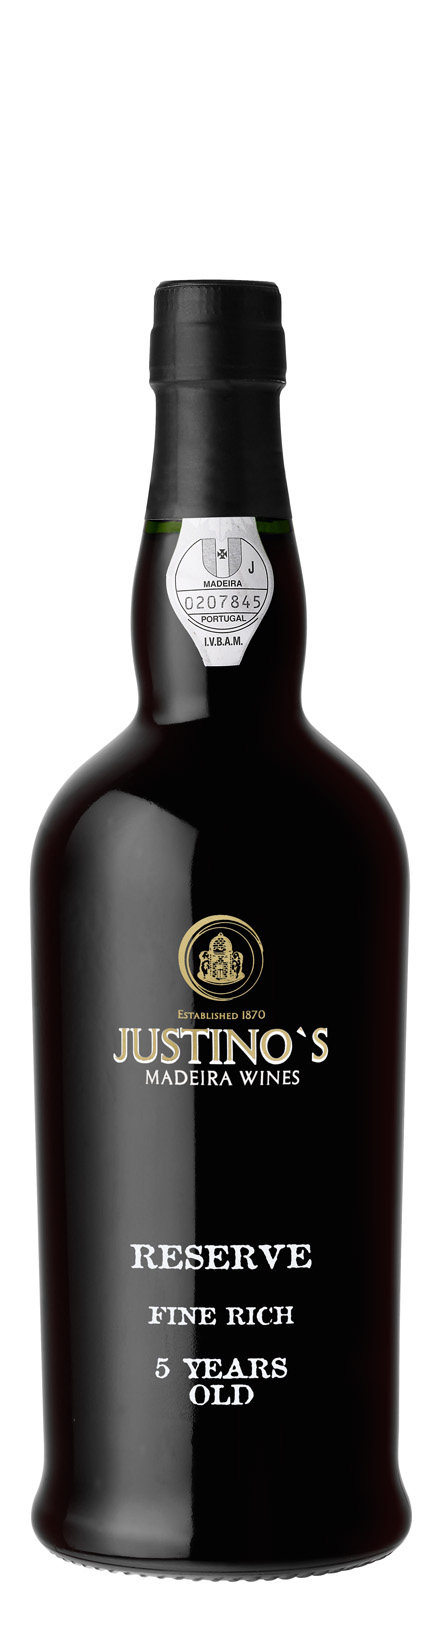 Justino's Madeira, 5 Year Old Fine Rich Reserve NV